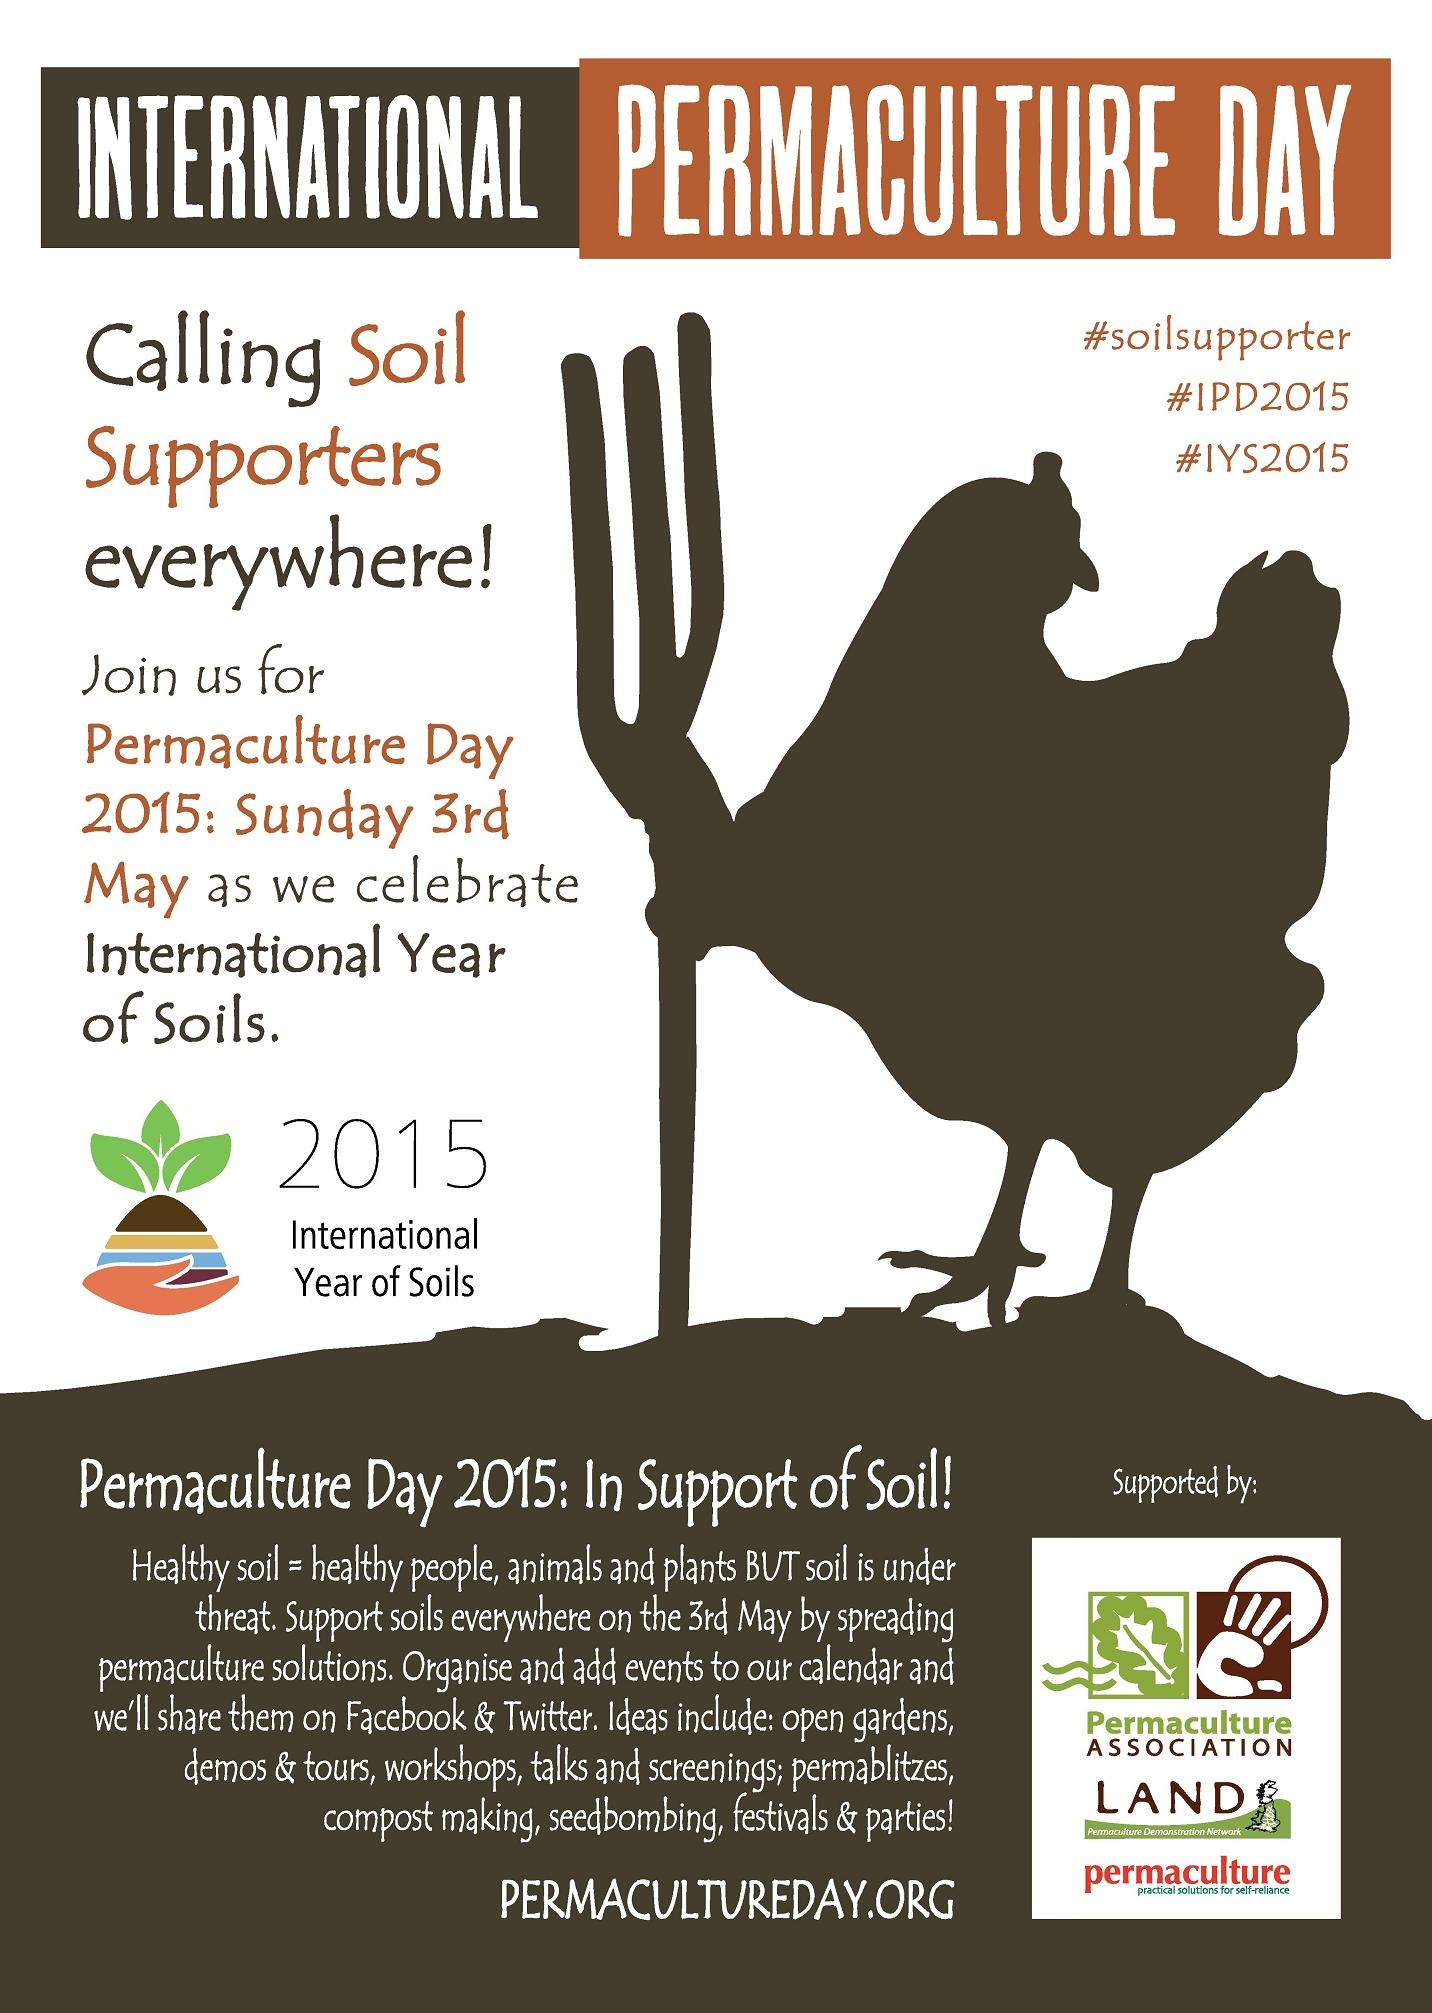 International Permaculture Day Worldwide Seed Freedom